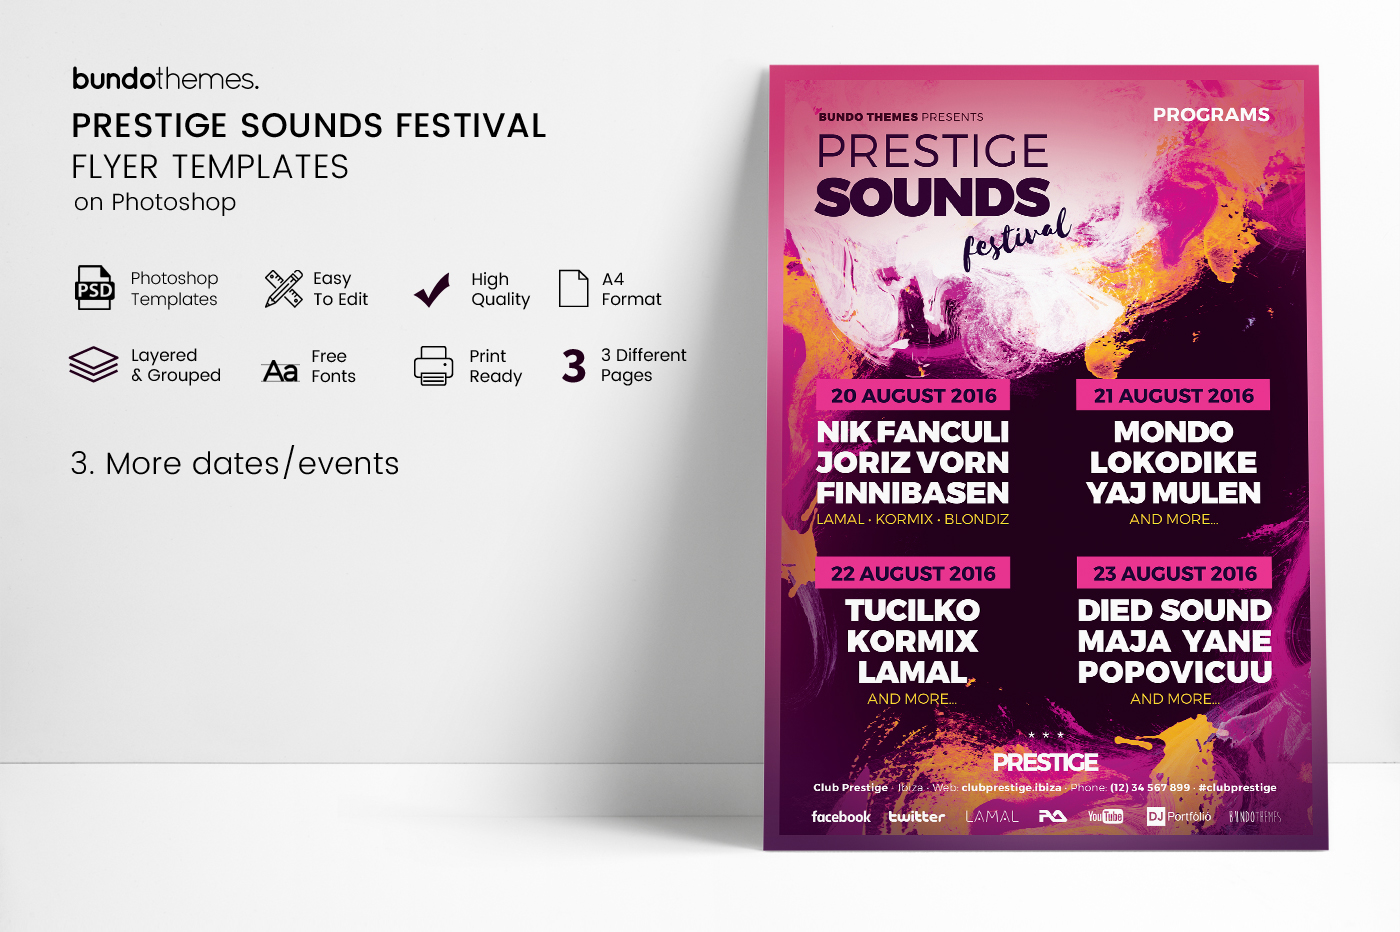 Prestige Sounds Festival Flyer Templates example image 3